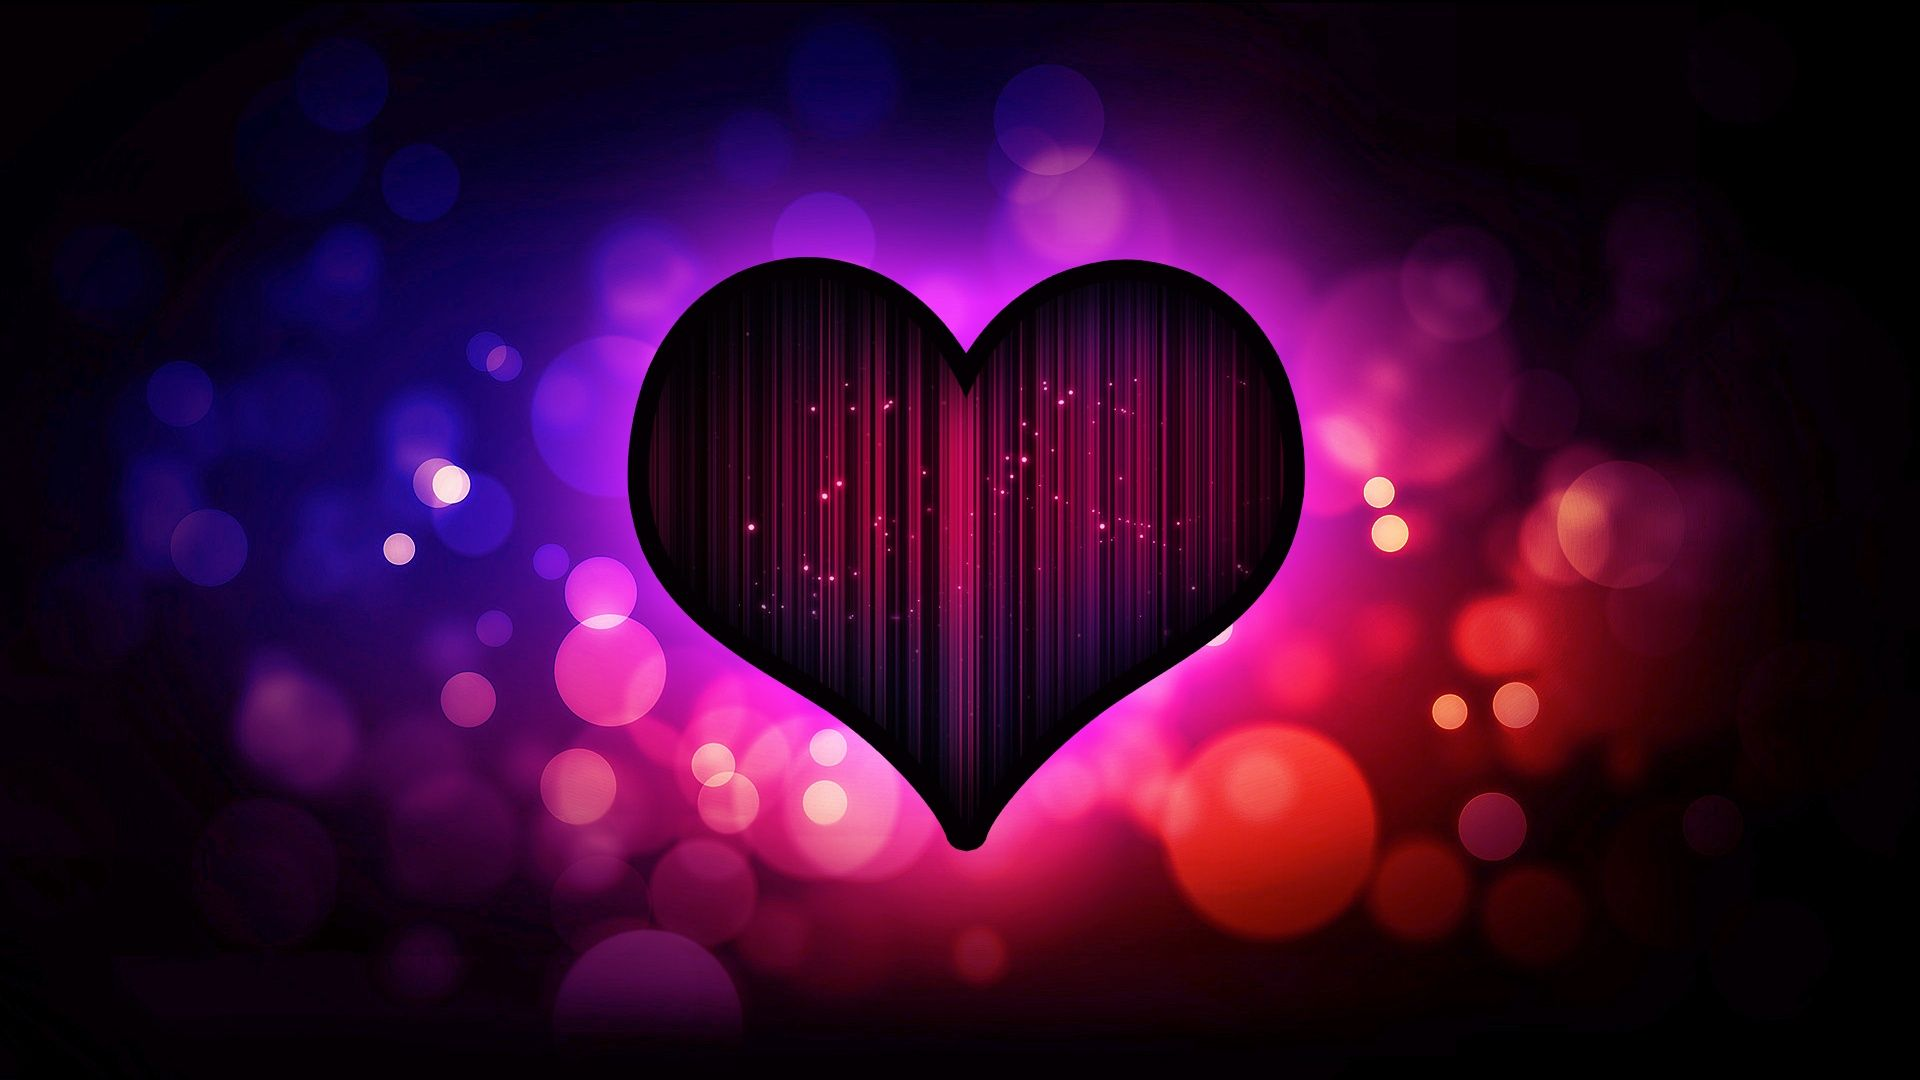 Valentine Love Heart Hd Wallpapers Heart Wallpaper Heart